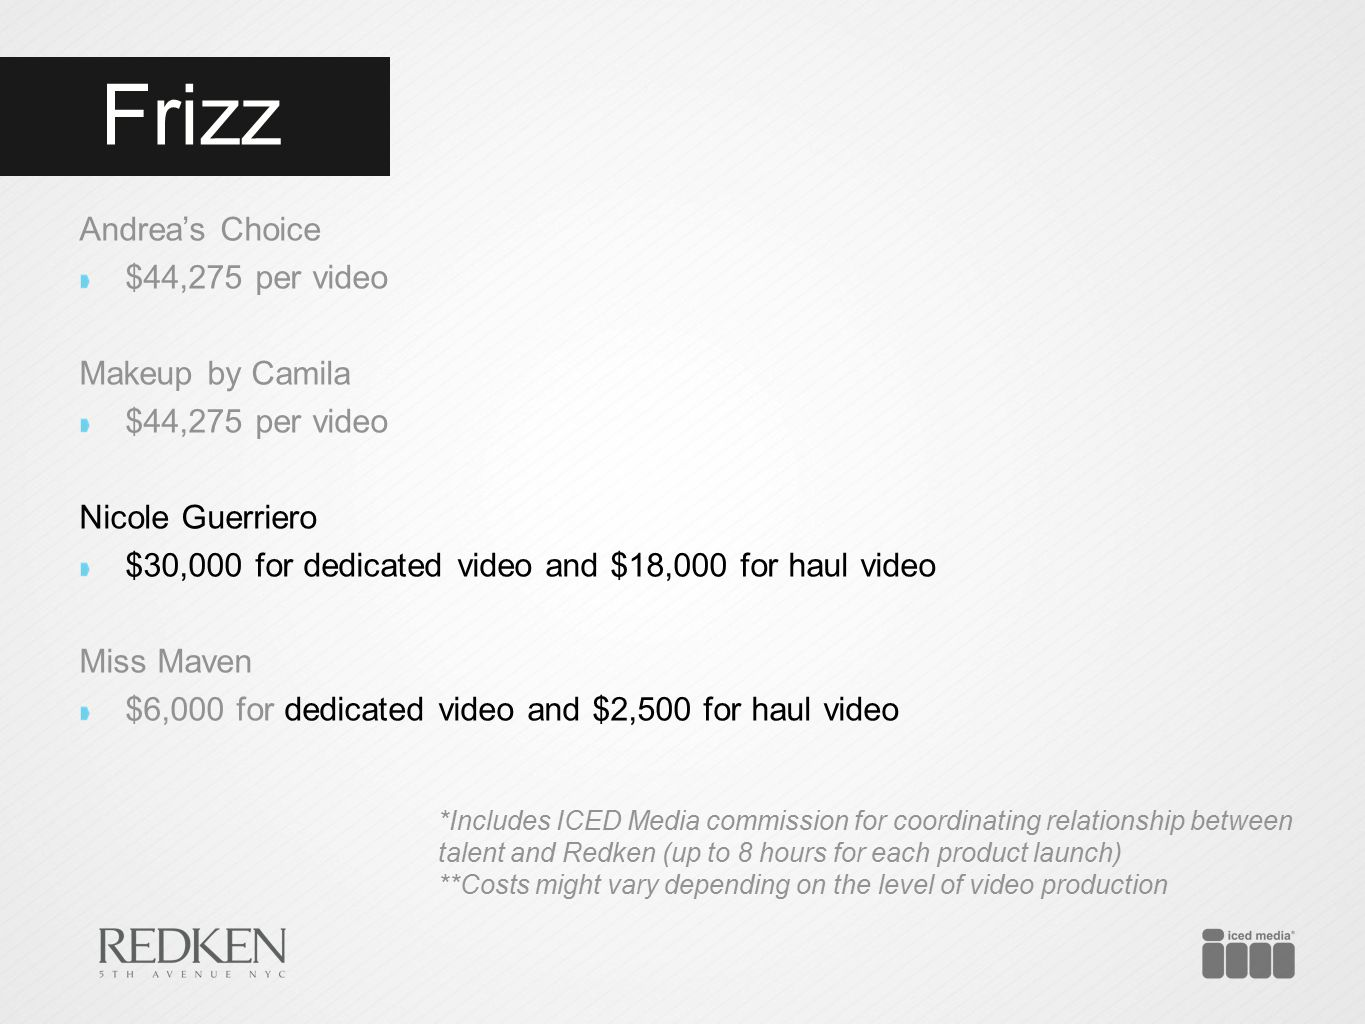 Frizz Andrea's Choice $44,275 per video Makeup by Camila $44,275 per video Nicole Guerriero $30,000 for dedicated video and $18,000 for haul video Mis